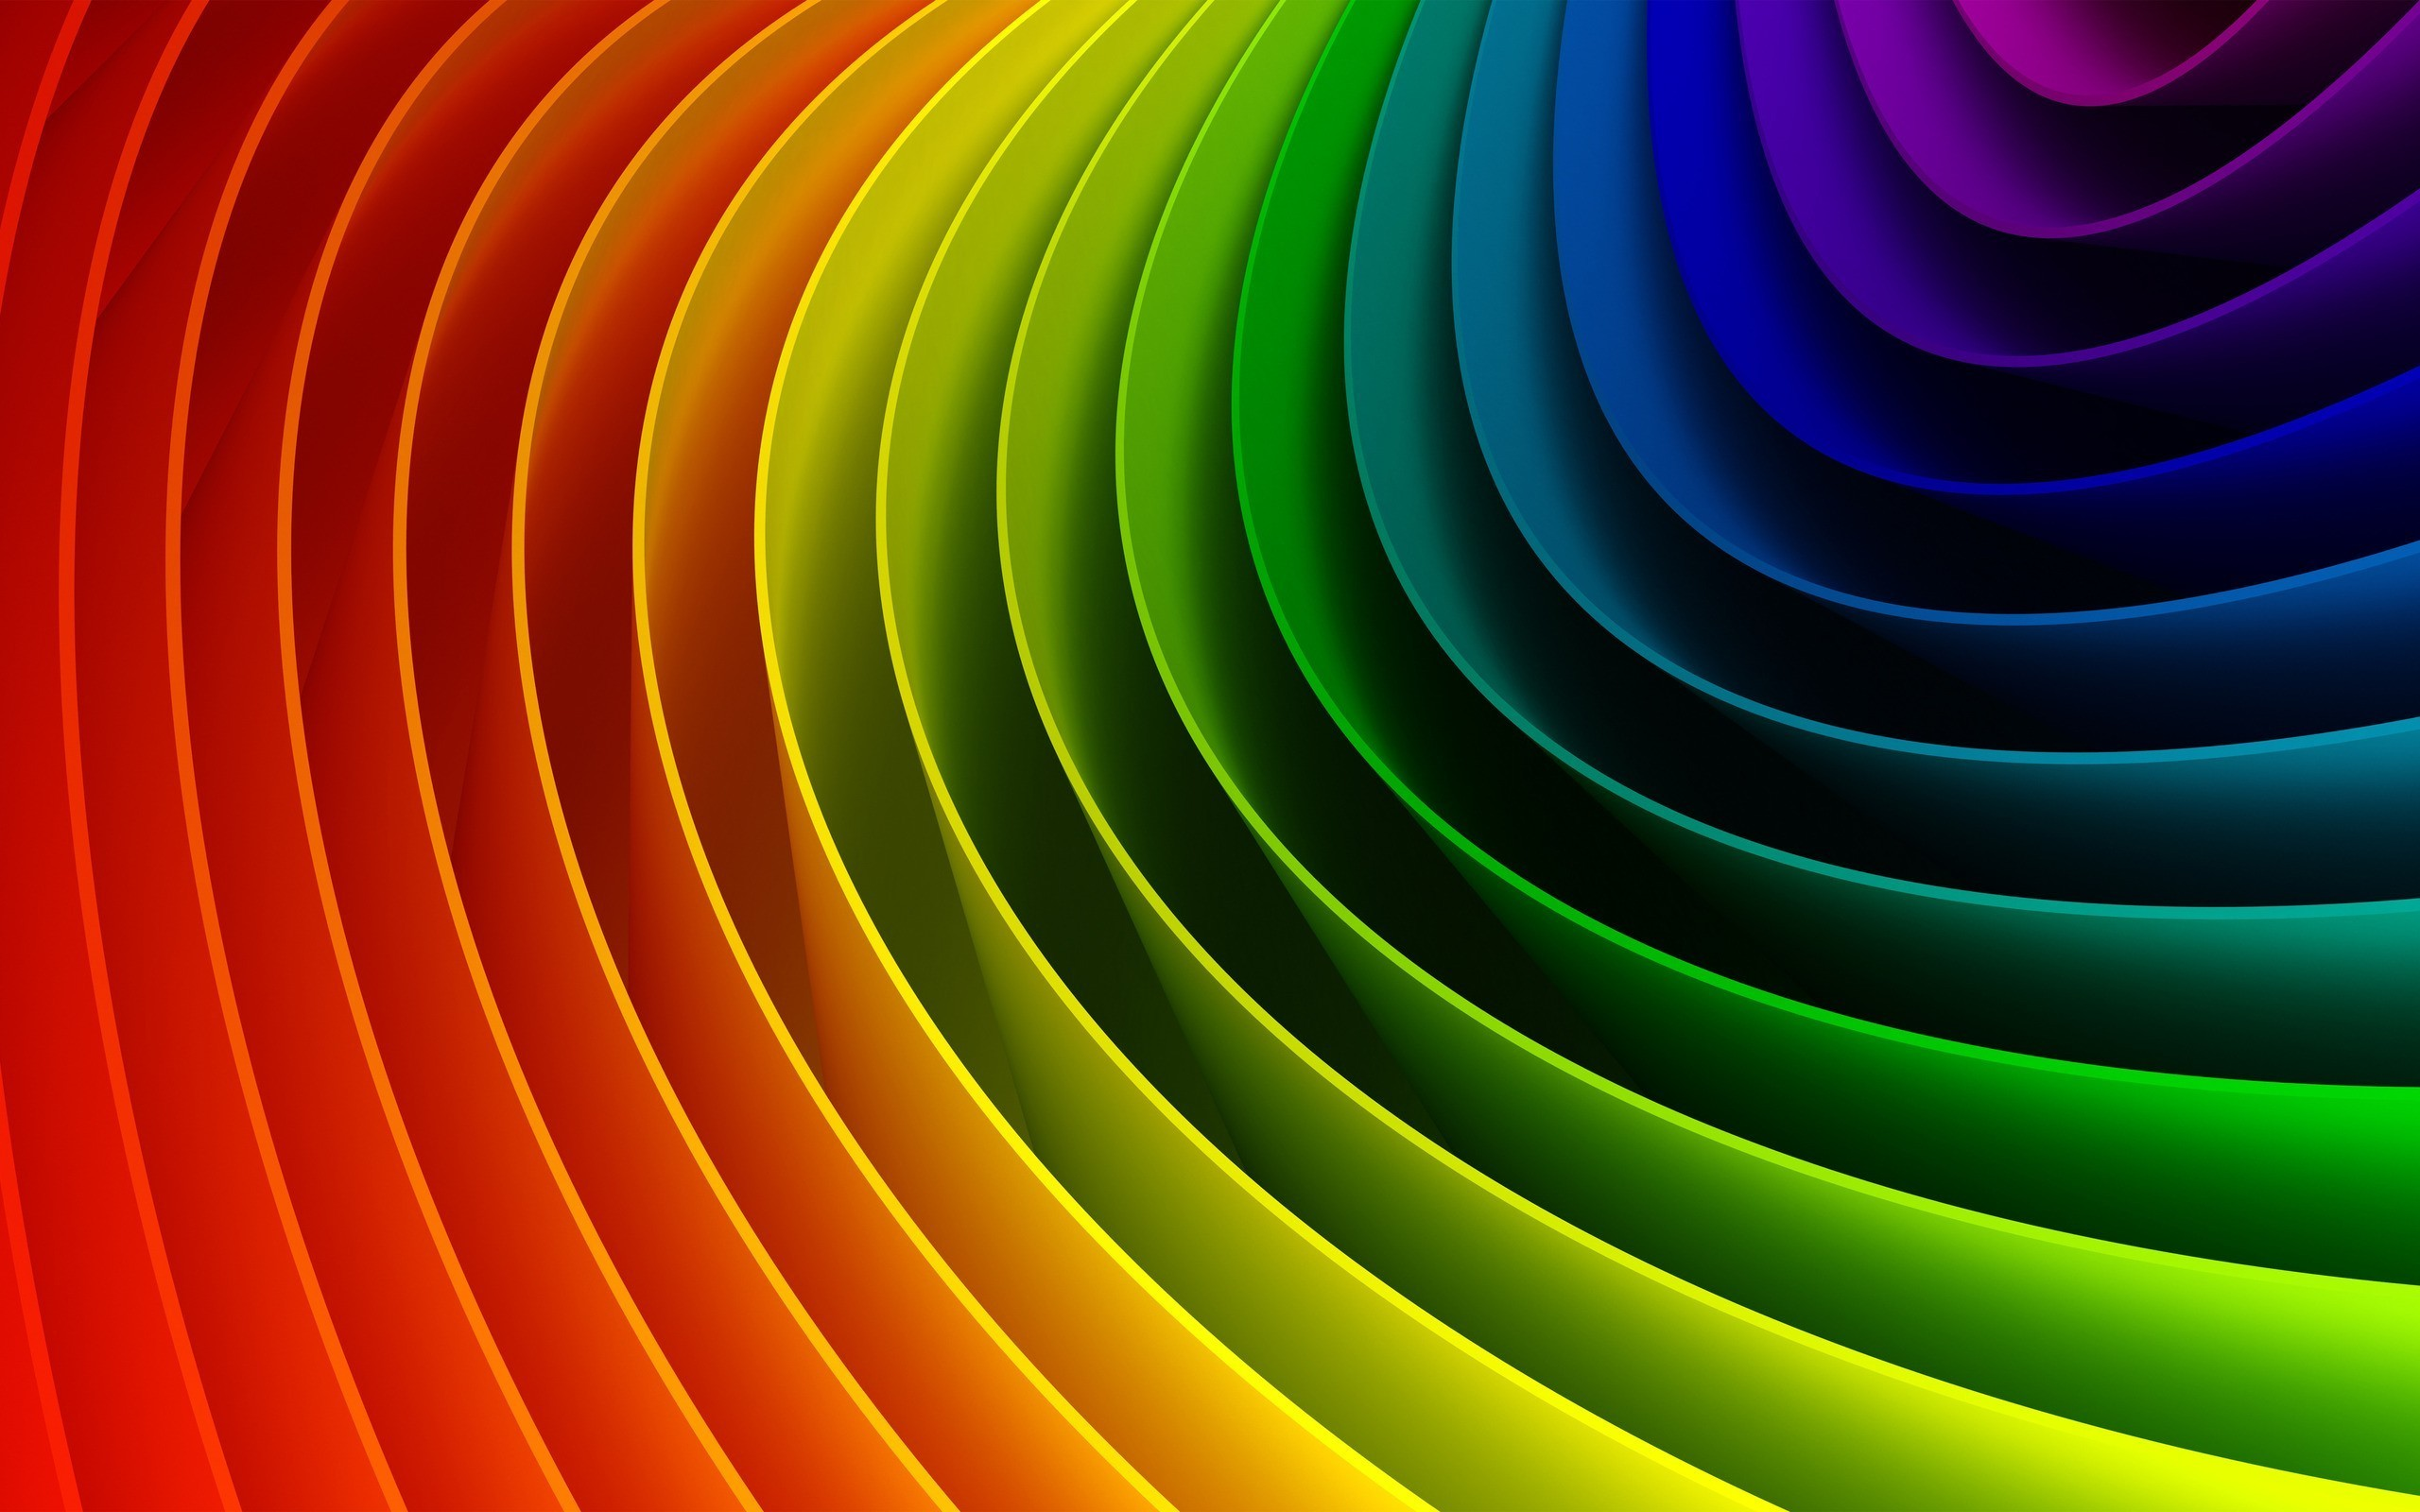 Curved colorful rainbow desktop PC and Mac wallpaper